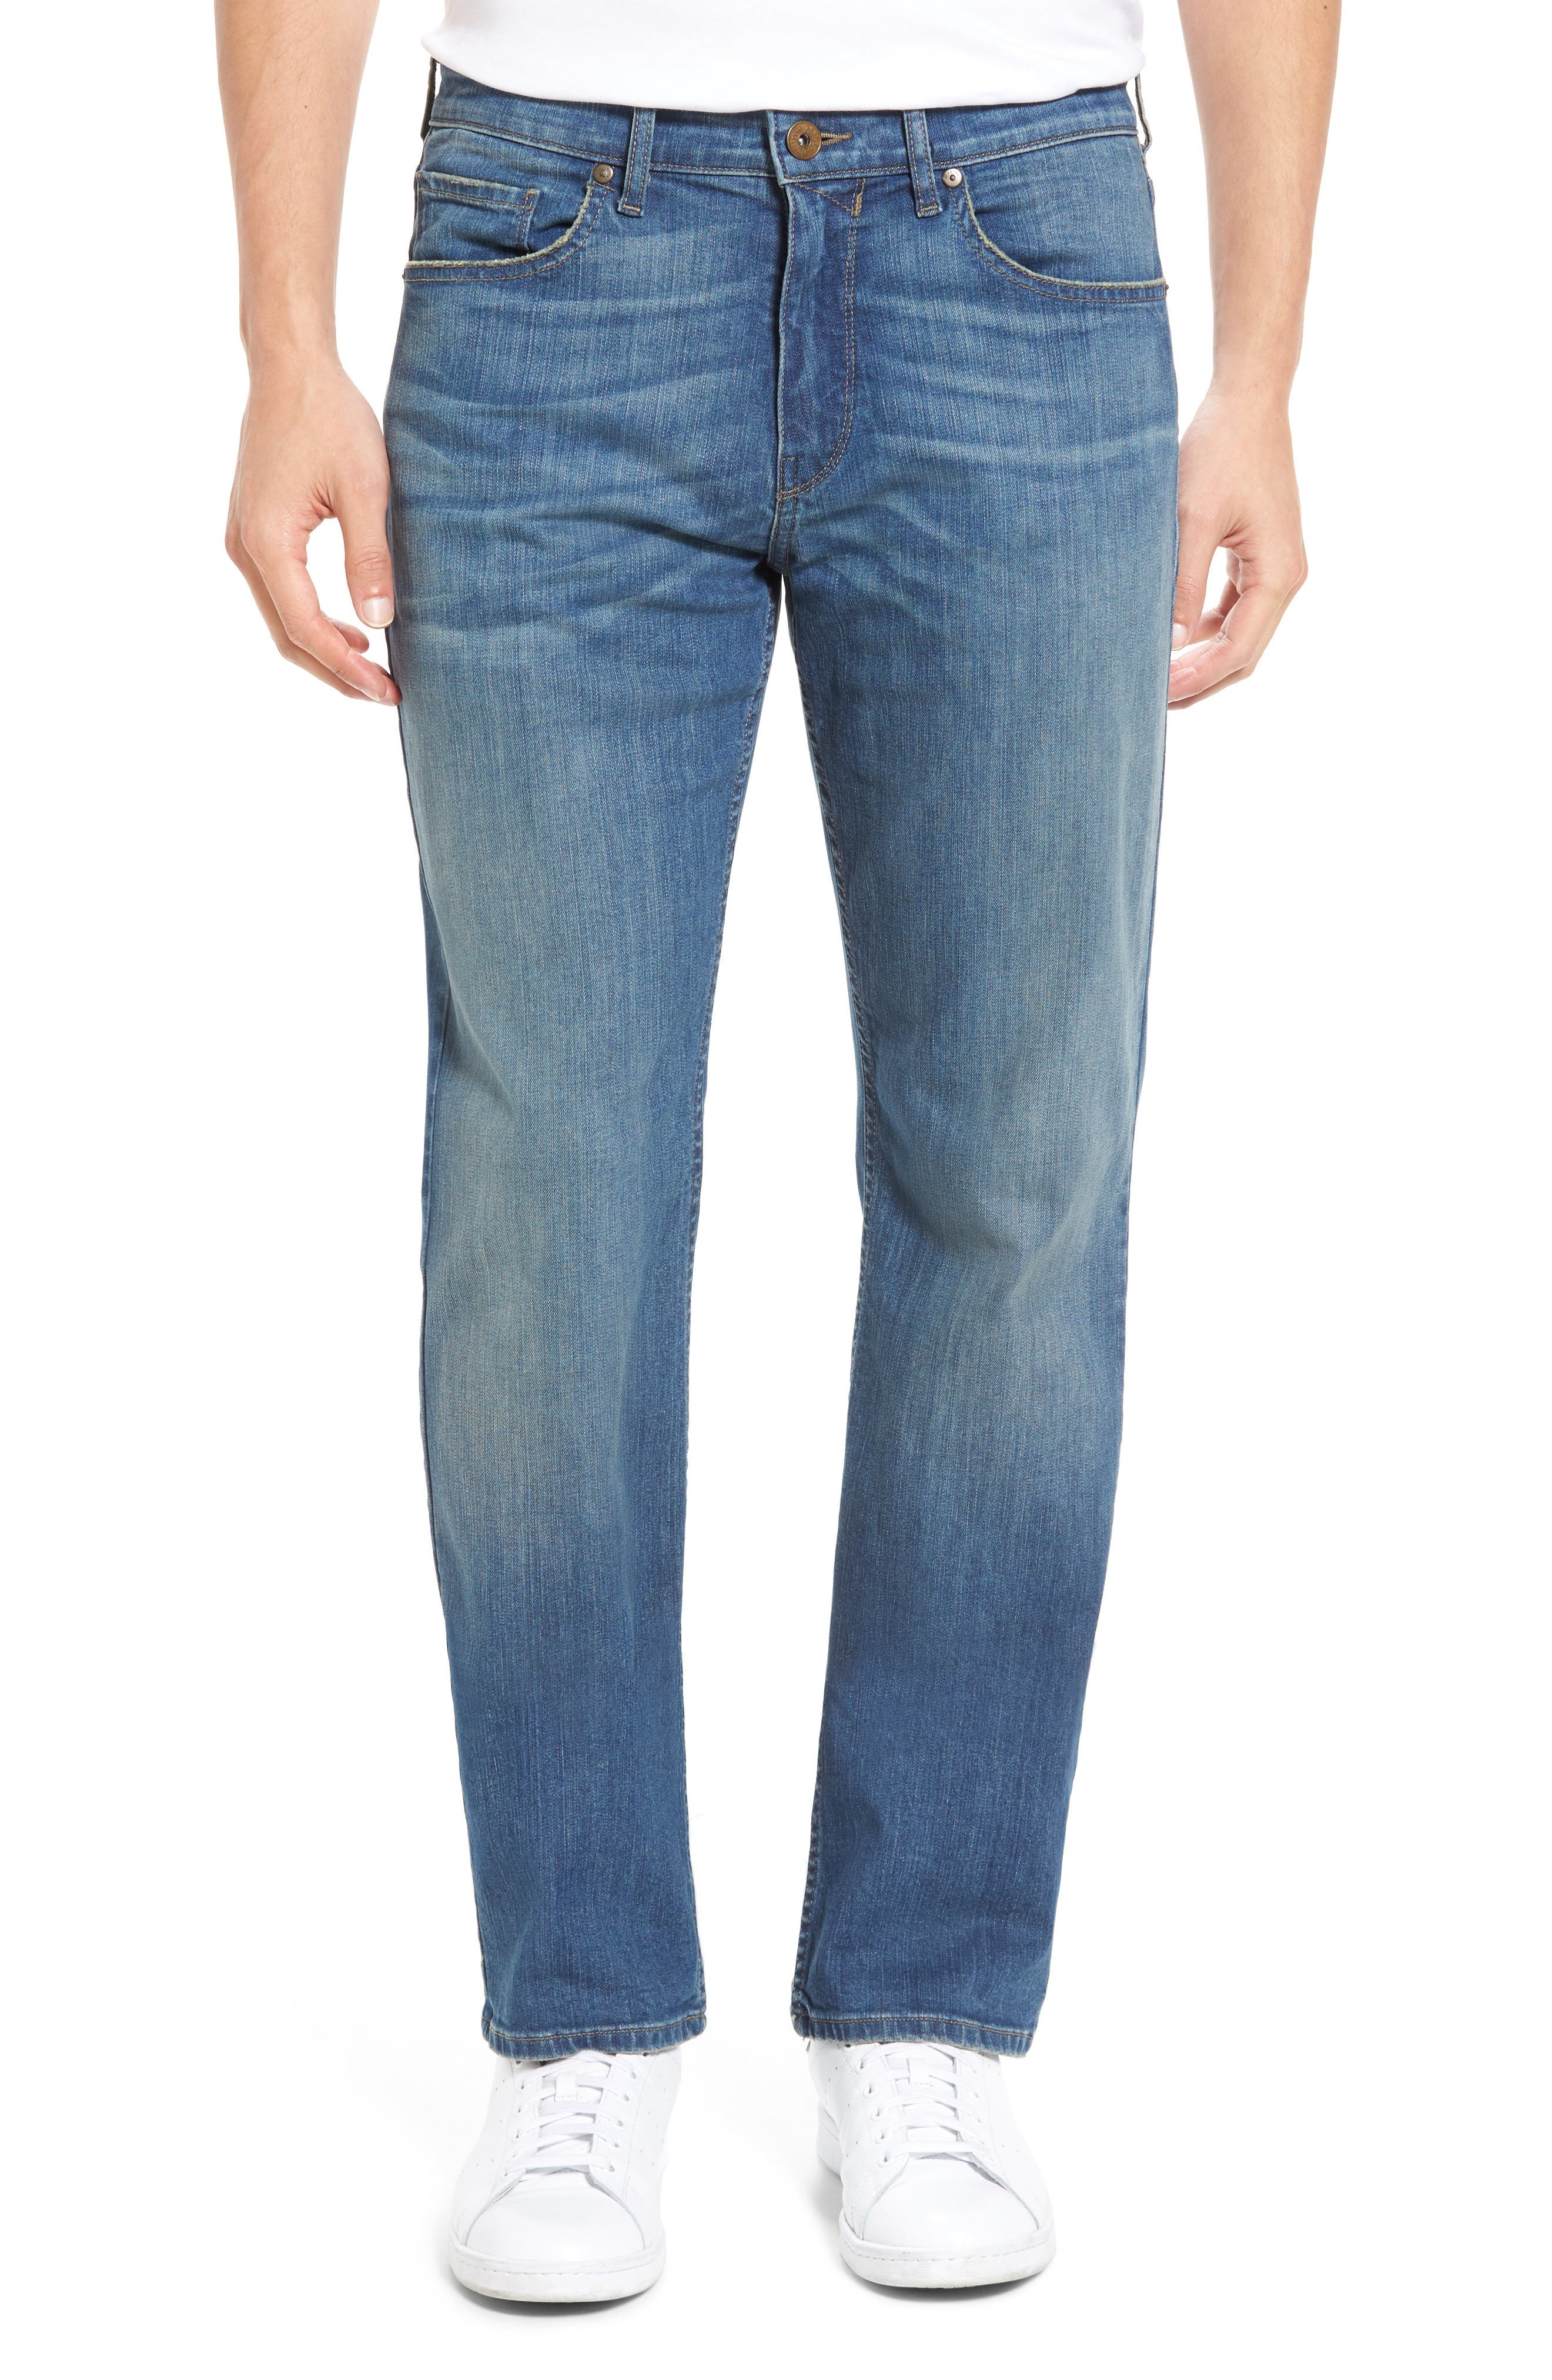 Legacy - Doheny Relaxed Fit Jeans,                             Main thumbnail 1, color,                             Cash